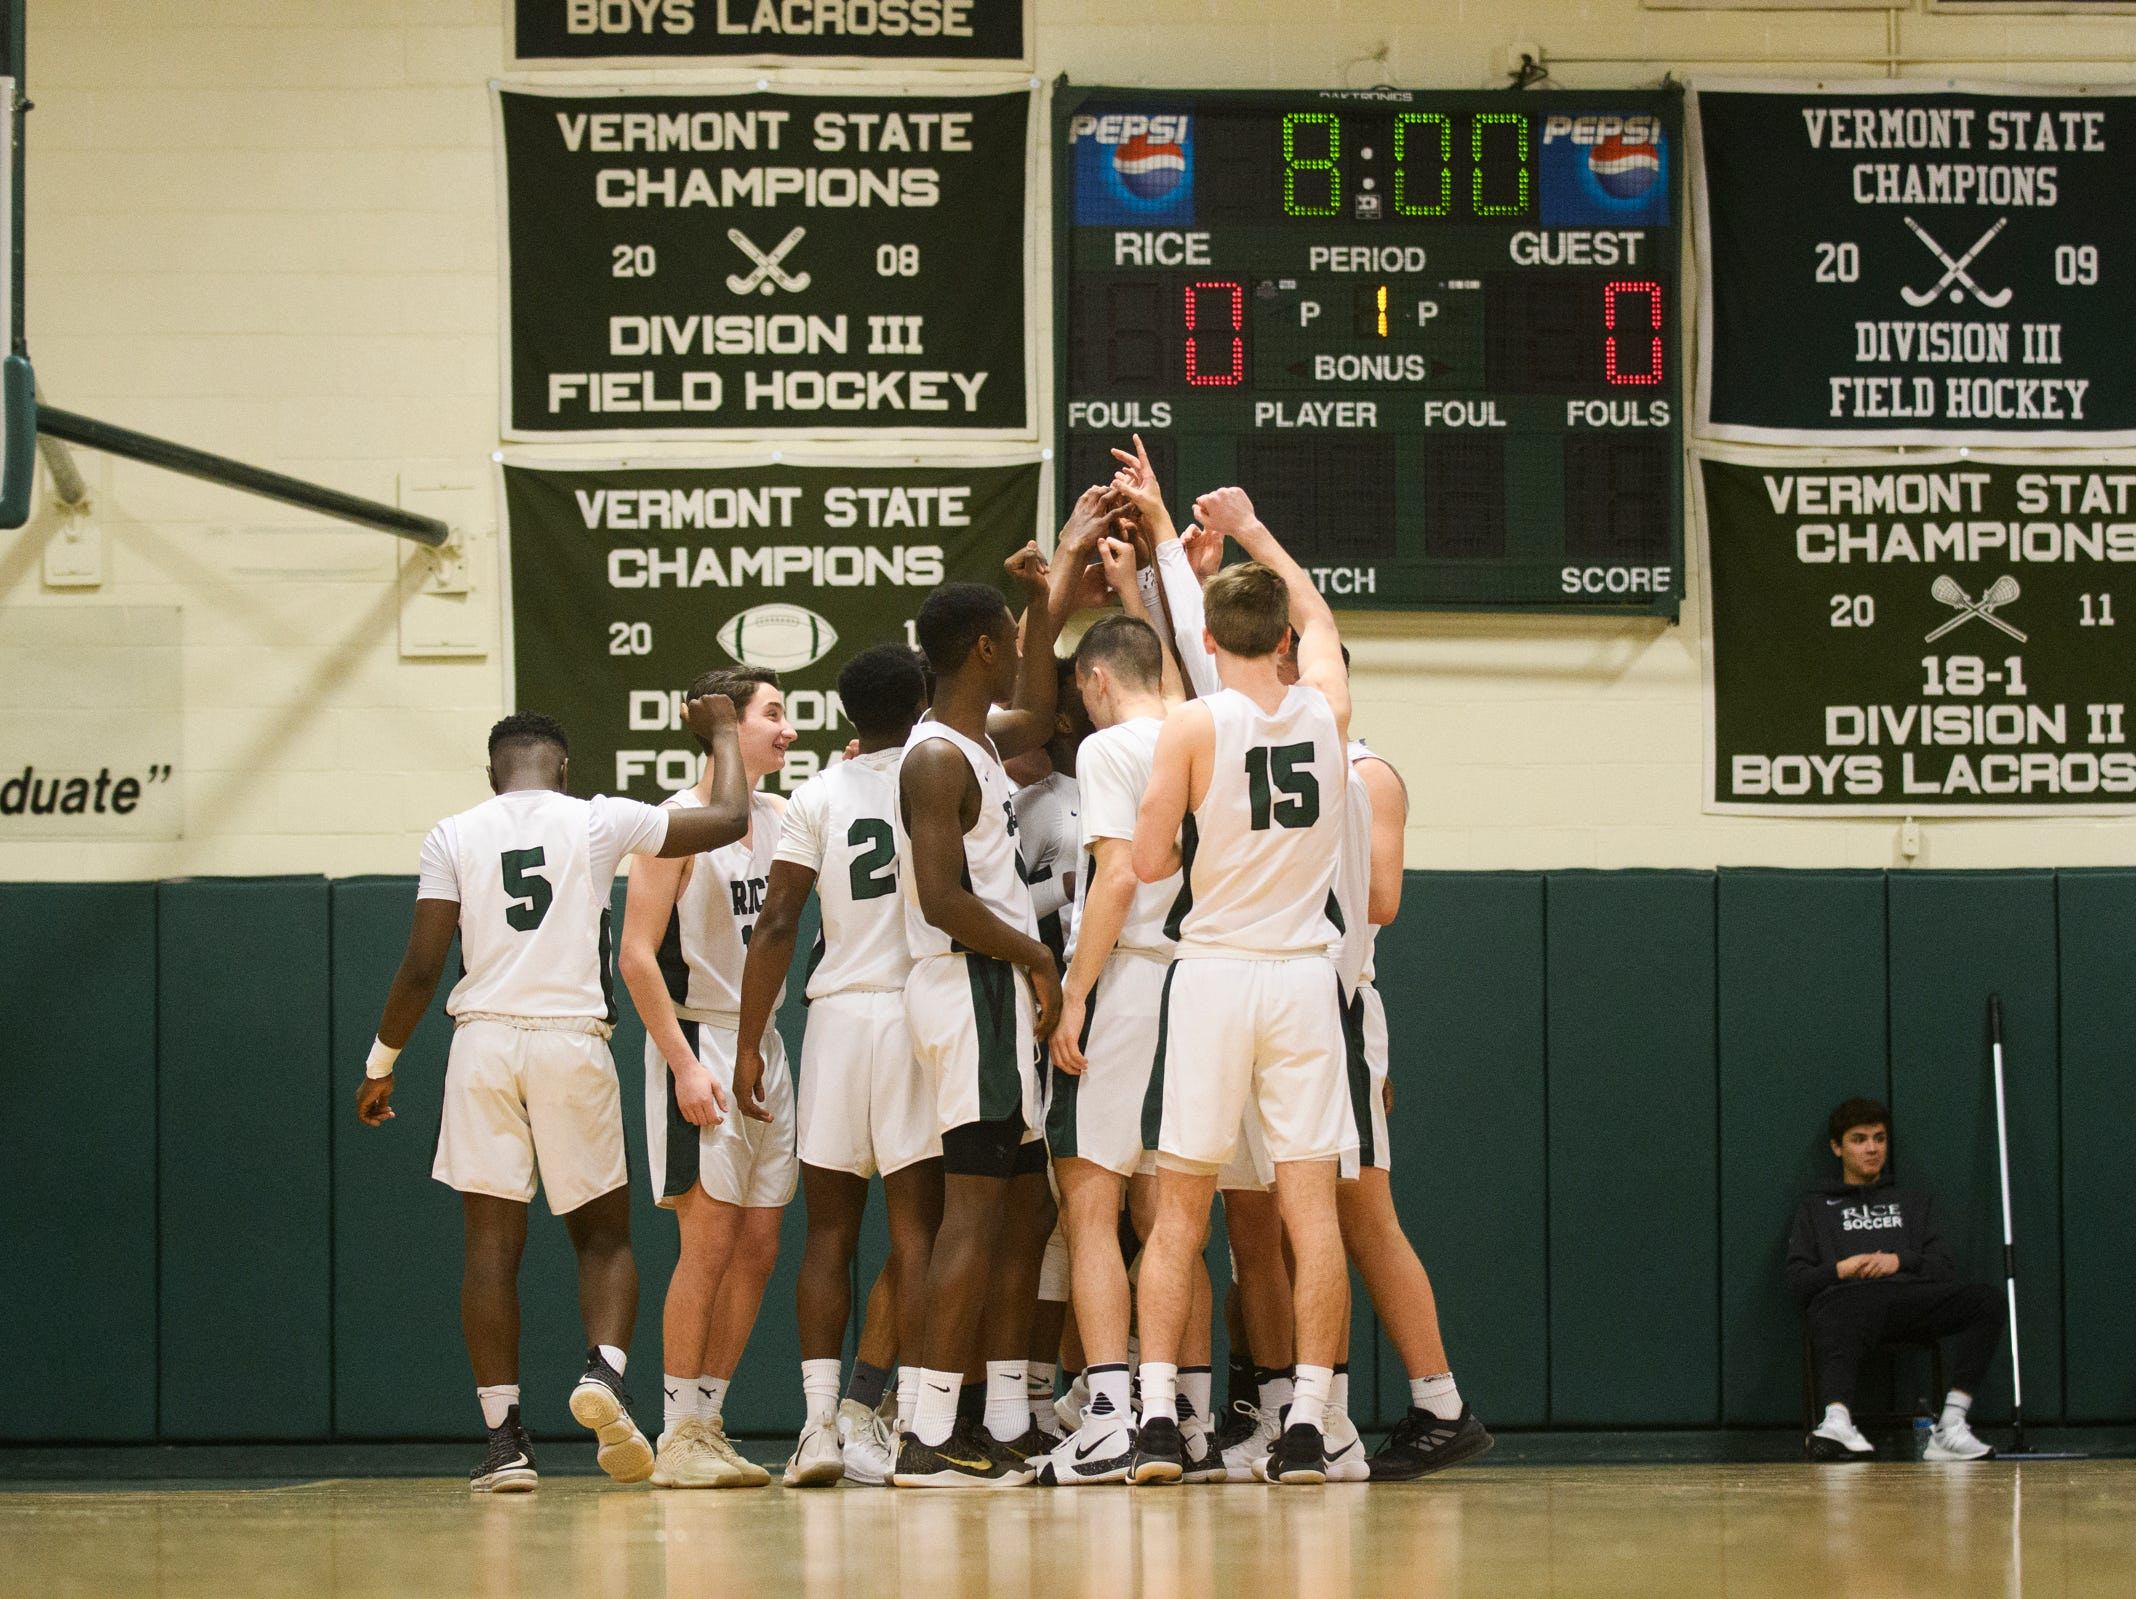 Rice huddles together during the boys quarterfinal basketball game between the Essex Hornets and the Rice Green Knights at Rice Memorial High School on Friday night March 8, 2019 in South Burlington, Vermont.